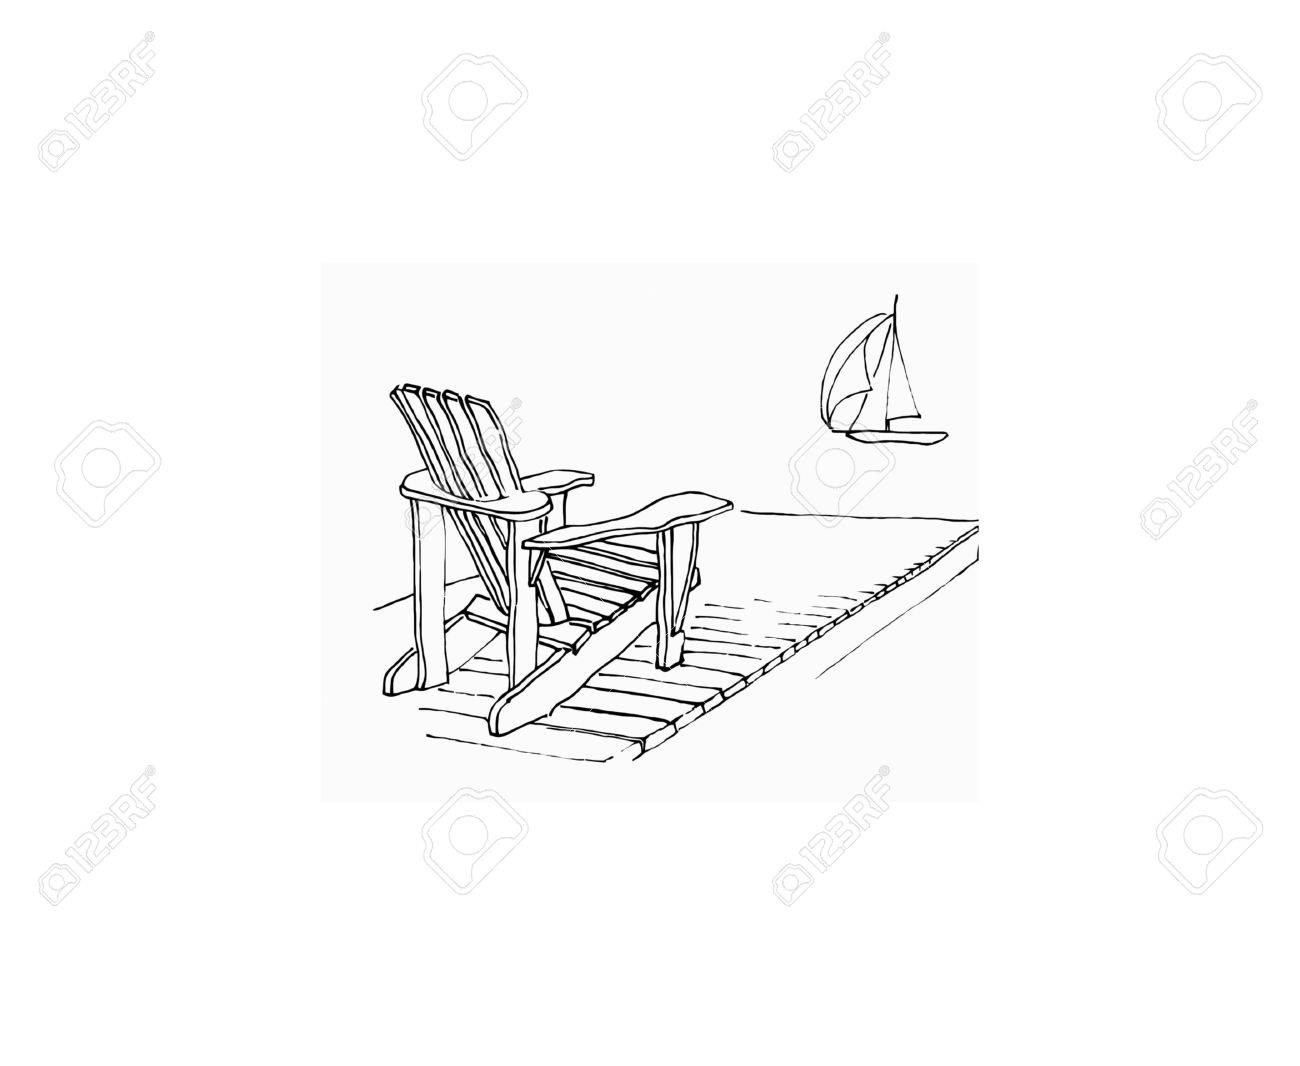 marker sketch of Adirondack chair on dock with sailing boat ..